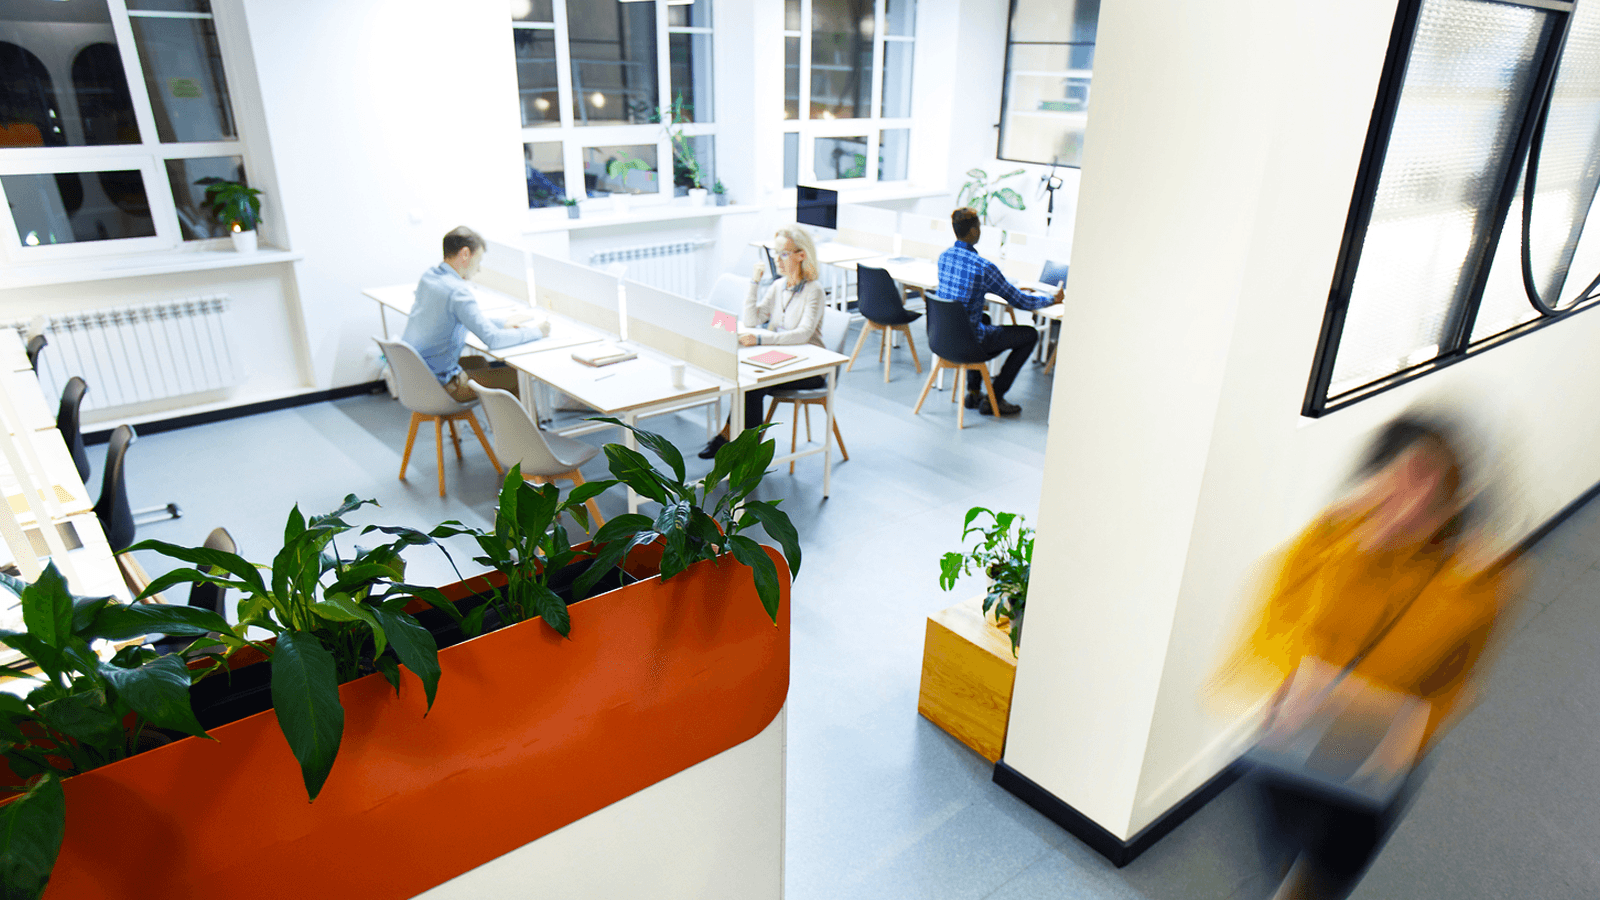 Open Office or Private Workspace Design: Which One Is Better?